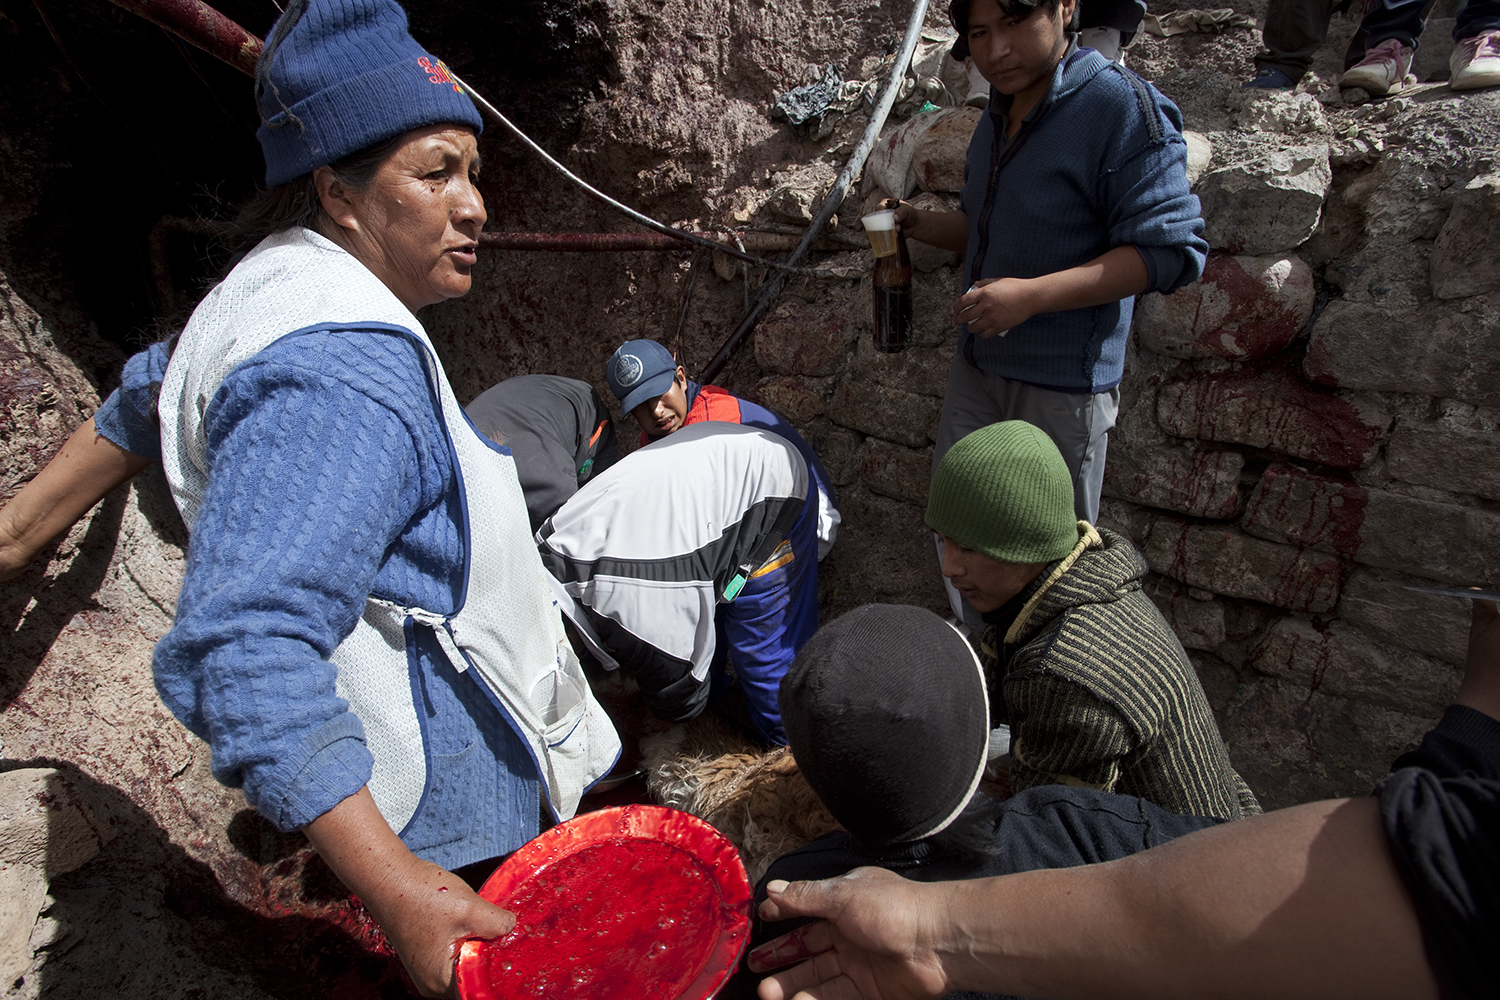 Womenare considered bad luck for miningand are rarely seen at the mine. The exception is the day of the llama sacrifices, when they celebrate with the men.